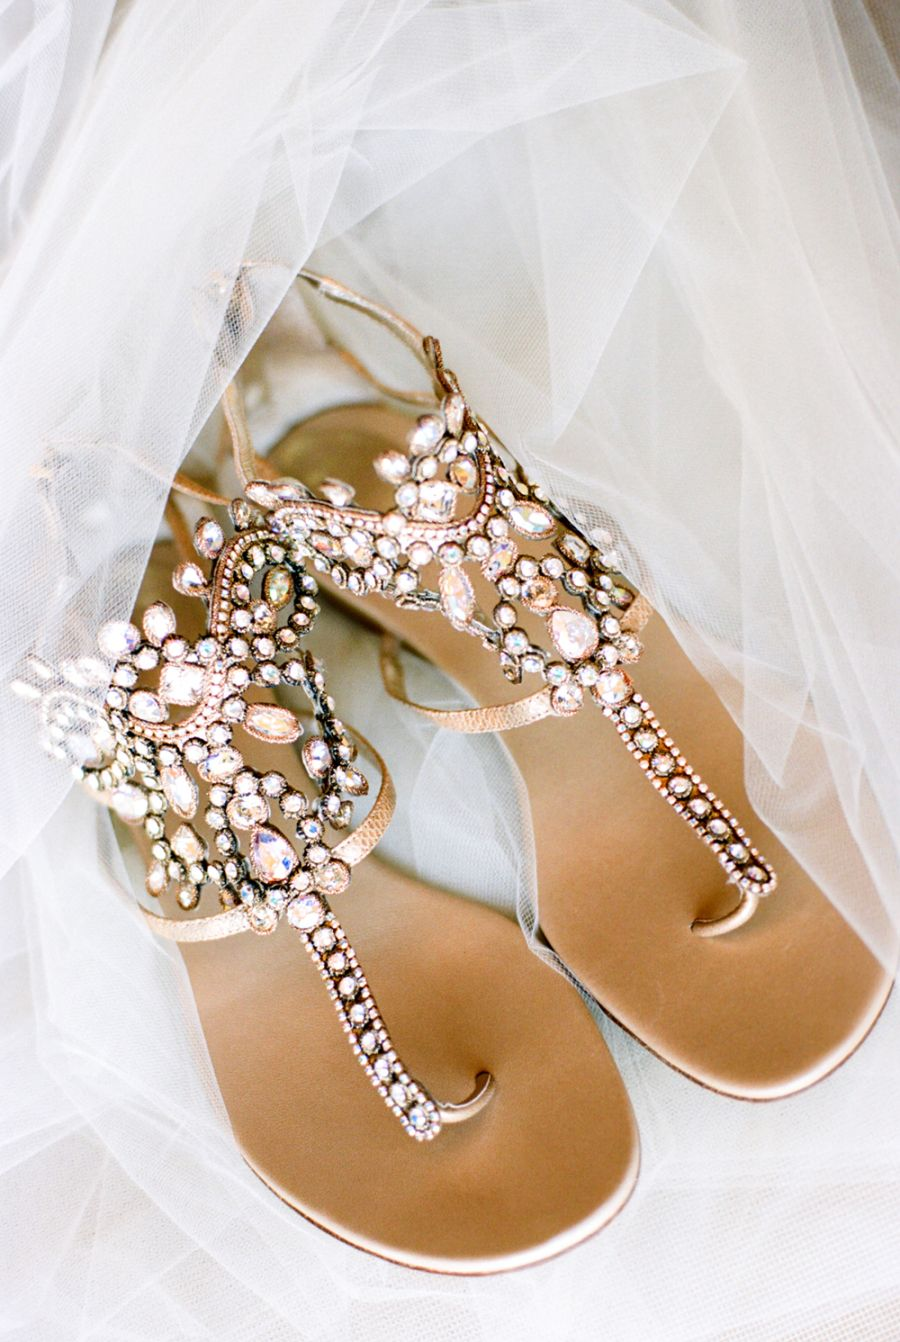 a83c1f4f57c49 Flat wedding shoes are available in many diverse styles and choices.  Embellished gladiator sandals  ...